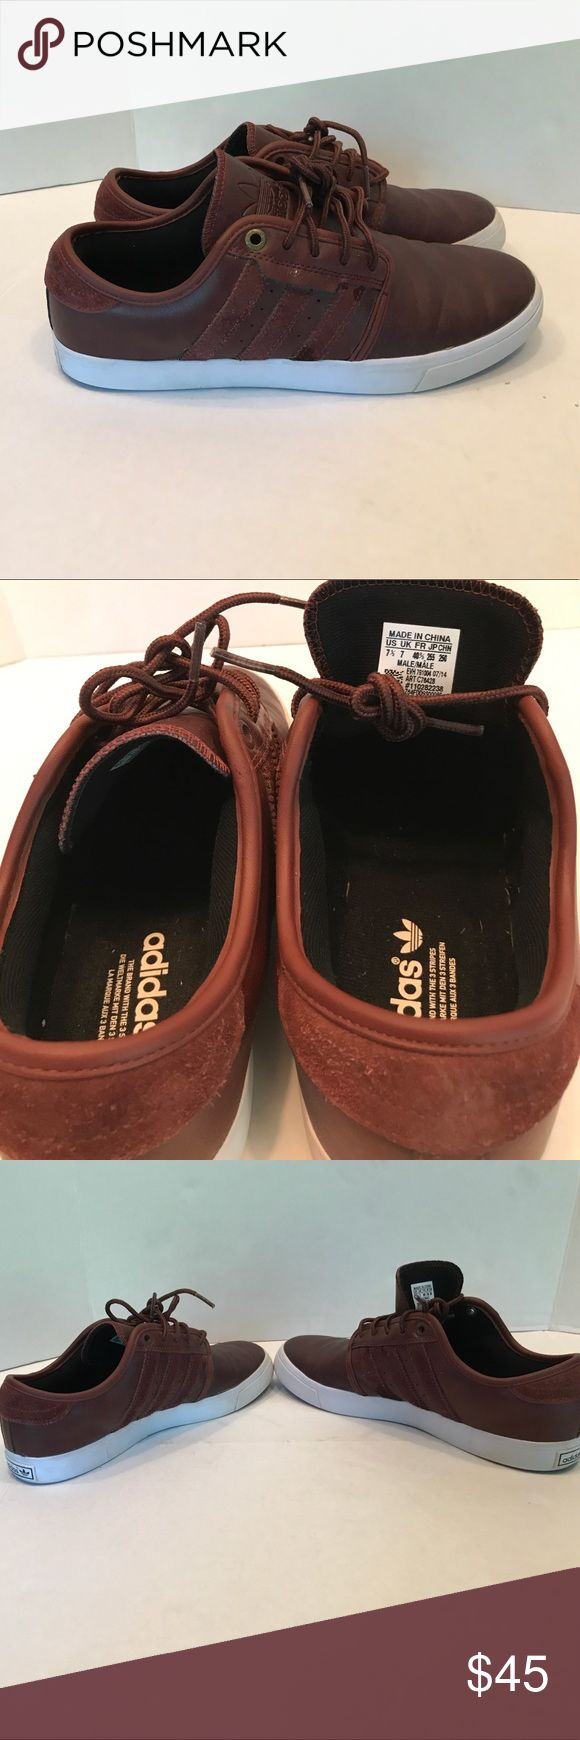 Adidas Originals Leather Burgundy Shoe size 7.5 Adidas Originals Leather Burgundy Men Shoe size 7.5 7 1/2 suede stripes adidas Shoes Sneakers